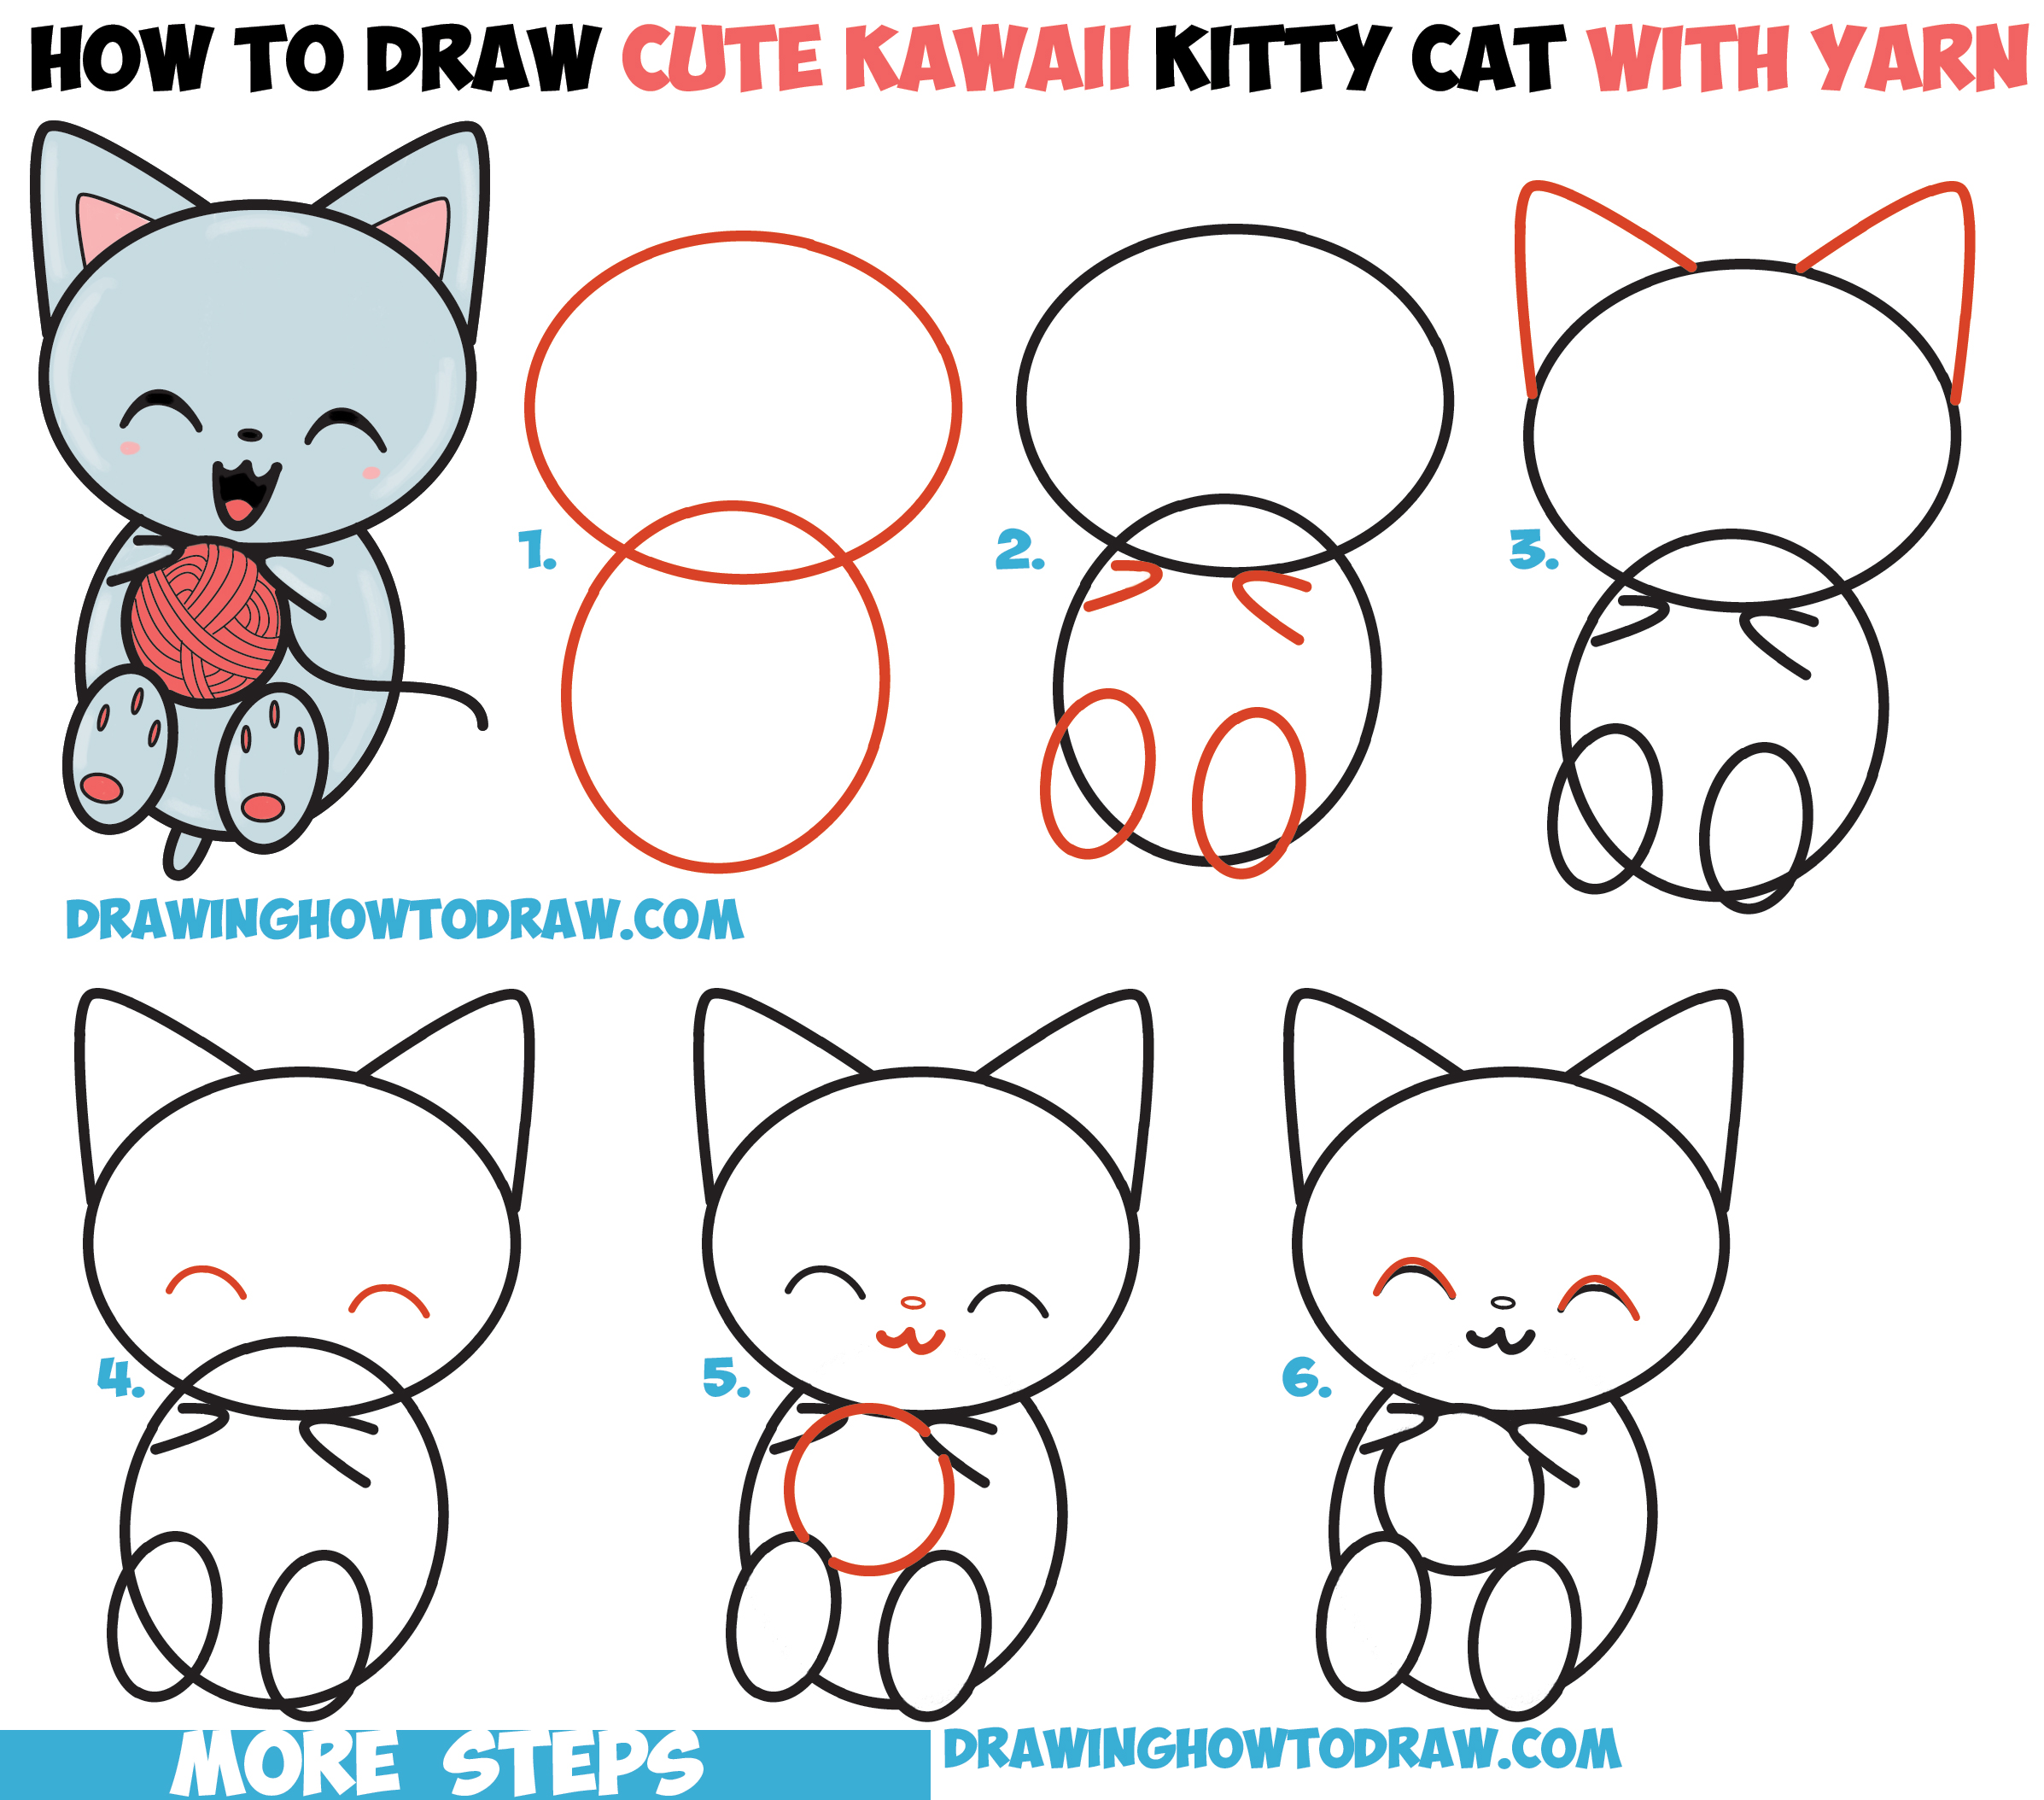 how to draw cute kawaii kitten cat playing with yarn easy step by step drawing